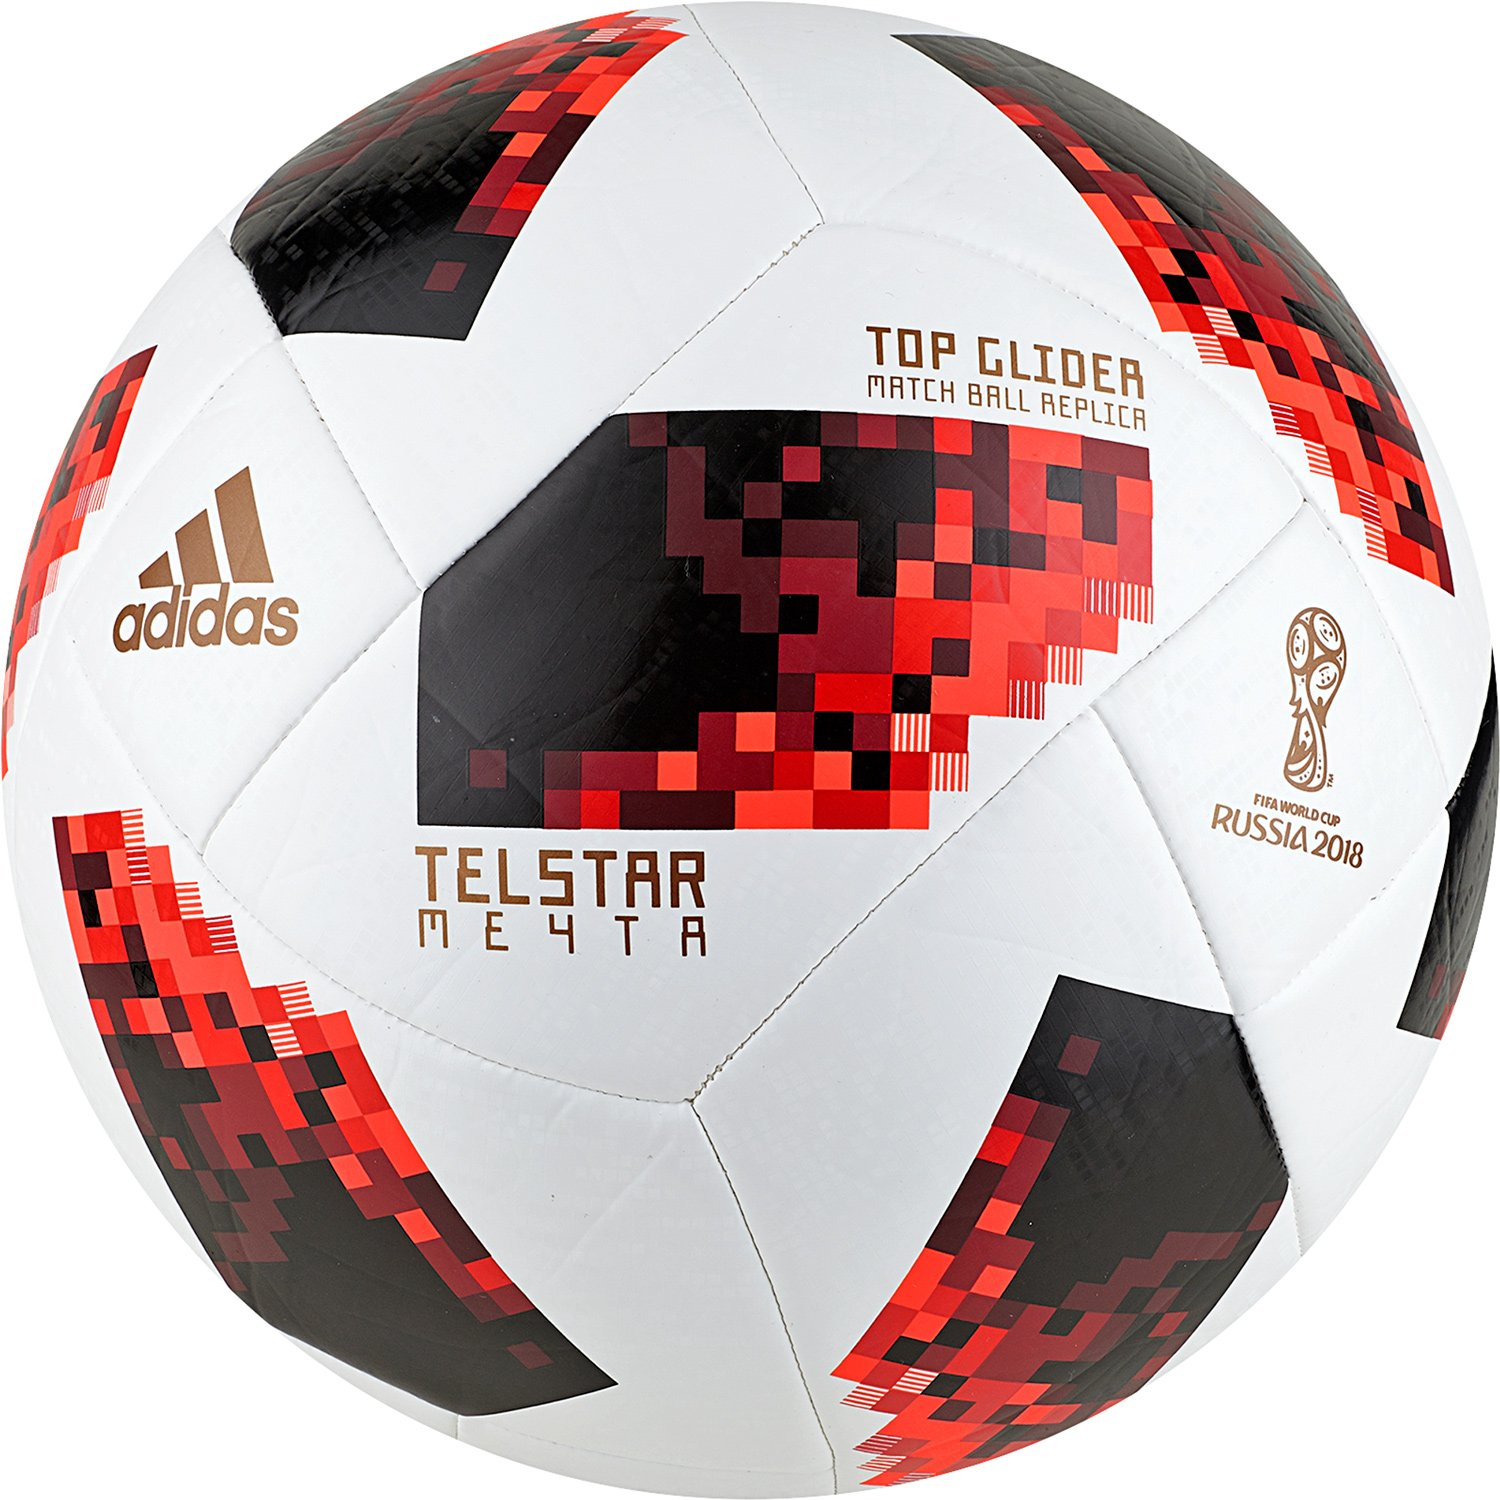 46037aa571c Buy ADIDAS FIFA World Cup 2018 Telstar Football (Knockout Top Glider Match  Ball Replica) Online at Low Prices in India - Amazon.in